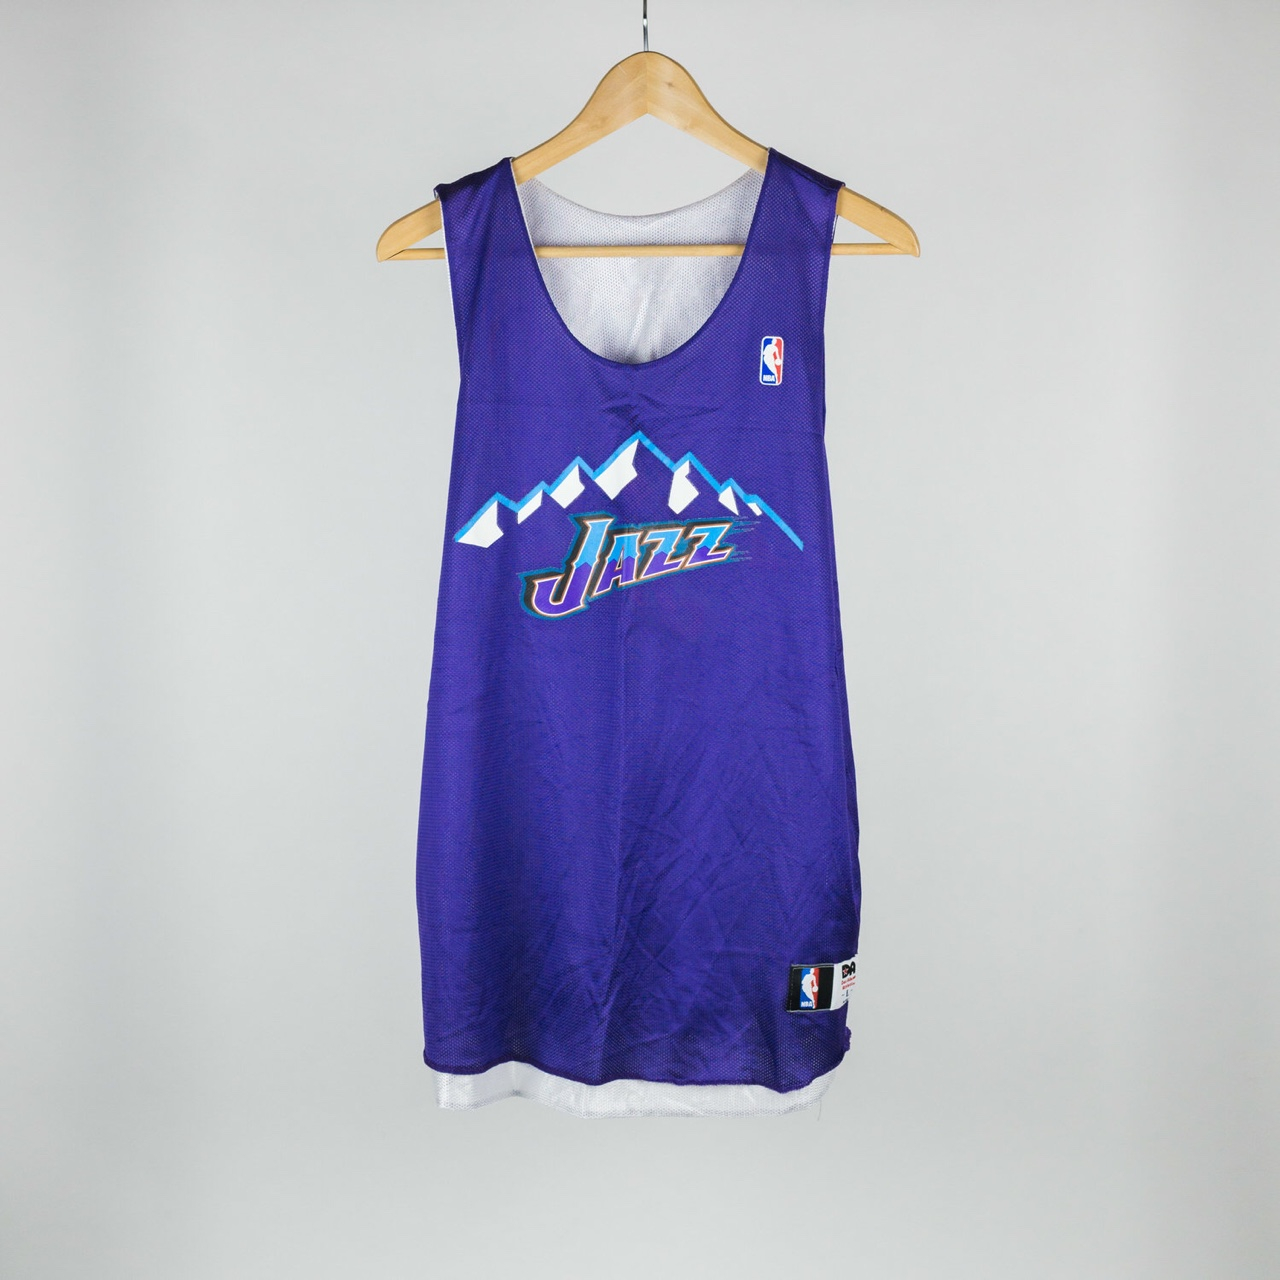 reputable site df9a0 e927f NBA Utah Jazz Reversible Practice Jersey L Mesh... - Depop